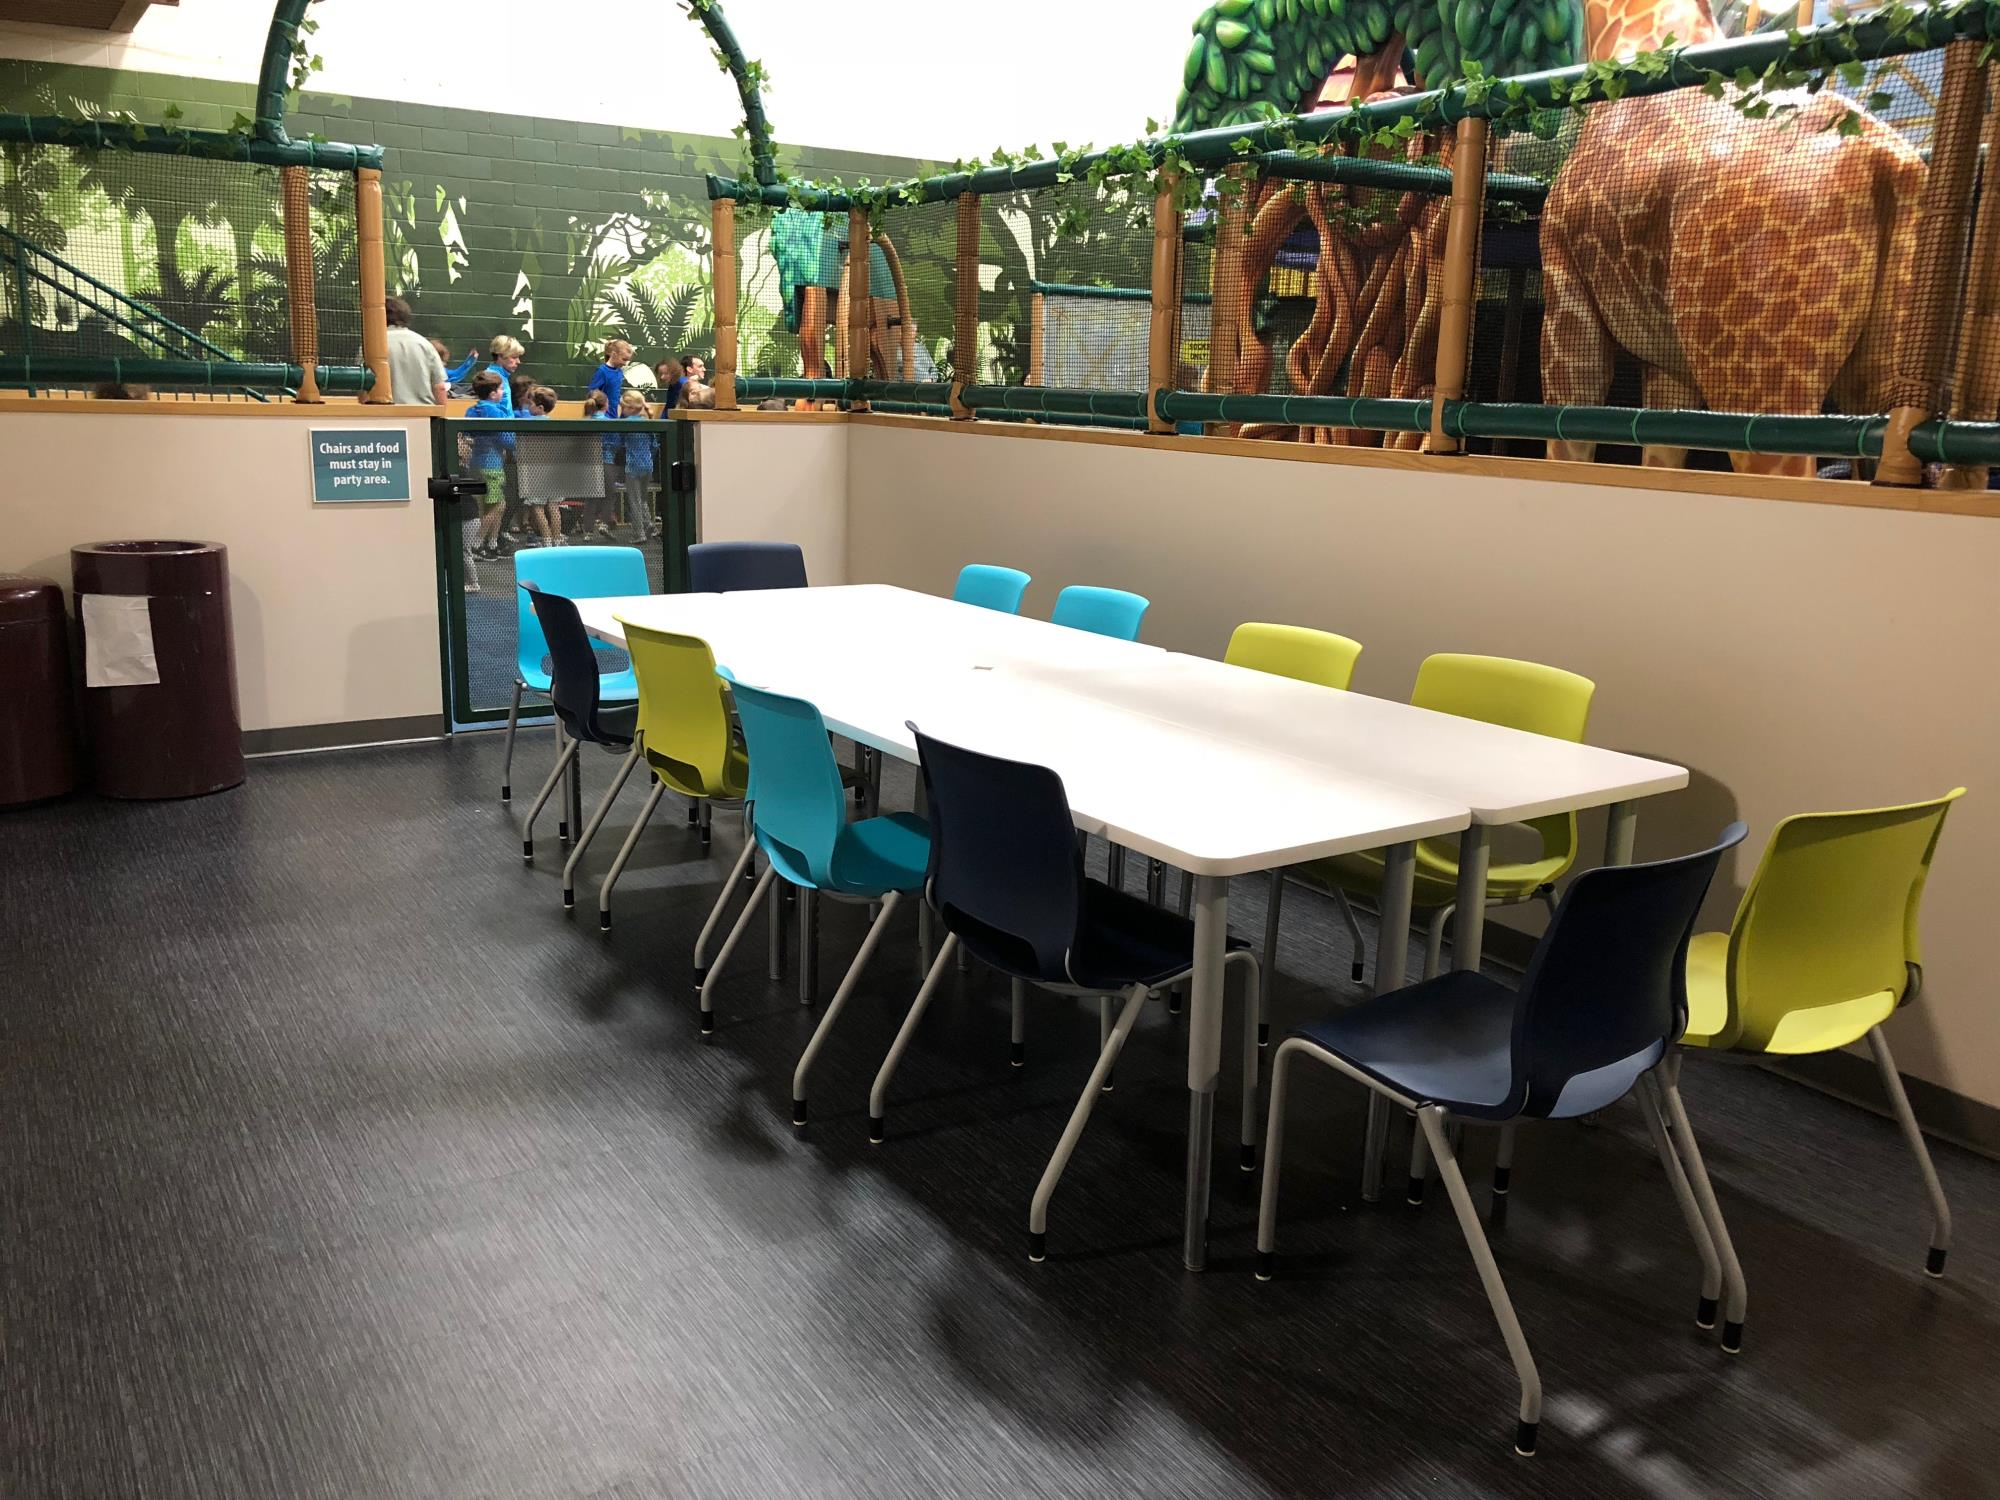 party space inside the tropical adventure indoor playground